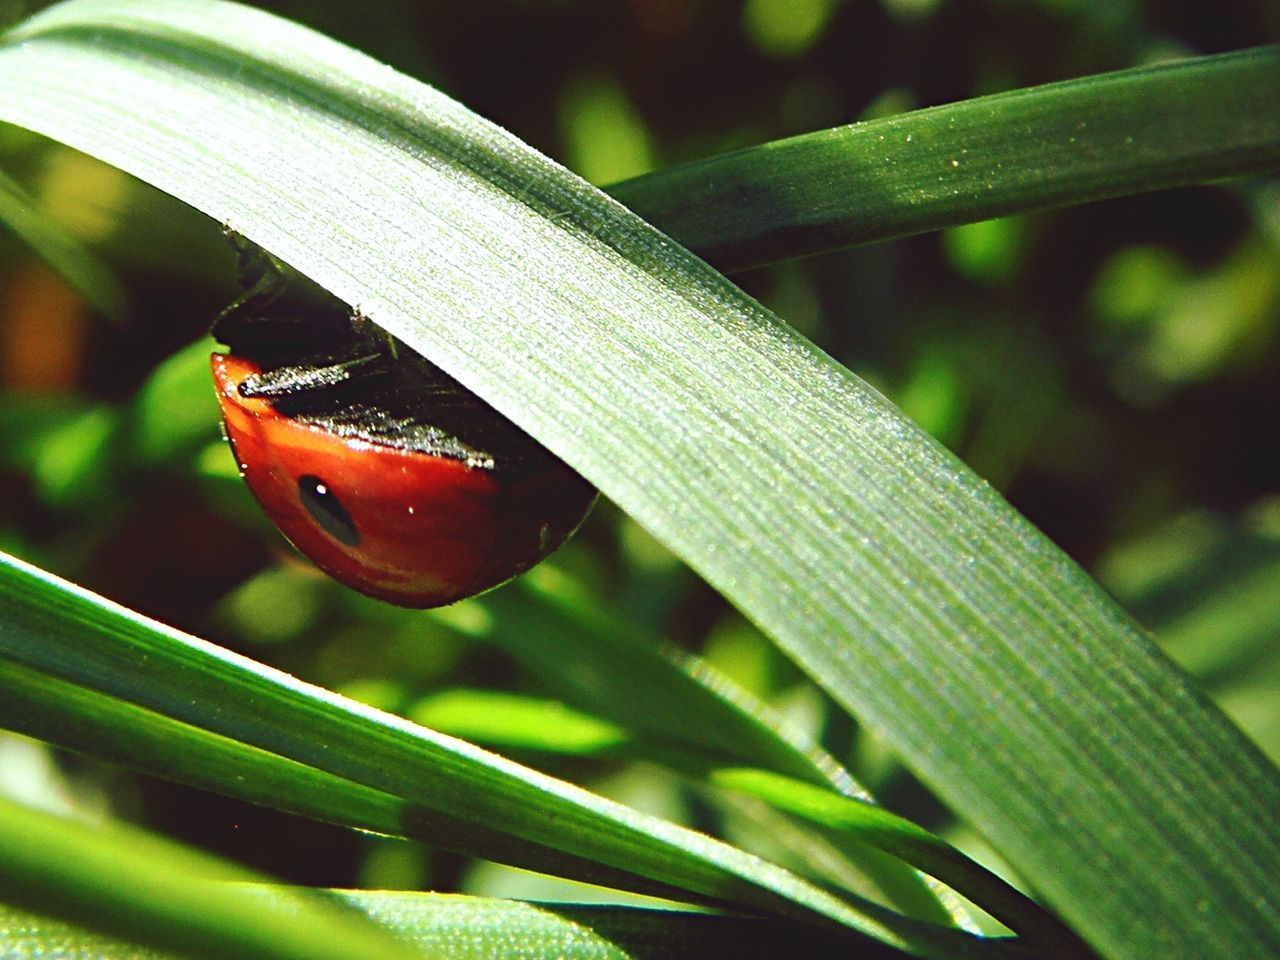 insect, one animal, animals in the wild, animal themes, close-up, green color, ladybug, animal wildlife, leaf, day, outdoors, plant, nature, focus on foreground, no people, growth, tiny, beauty in nature, fragility